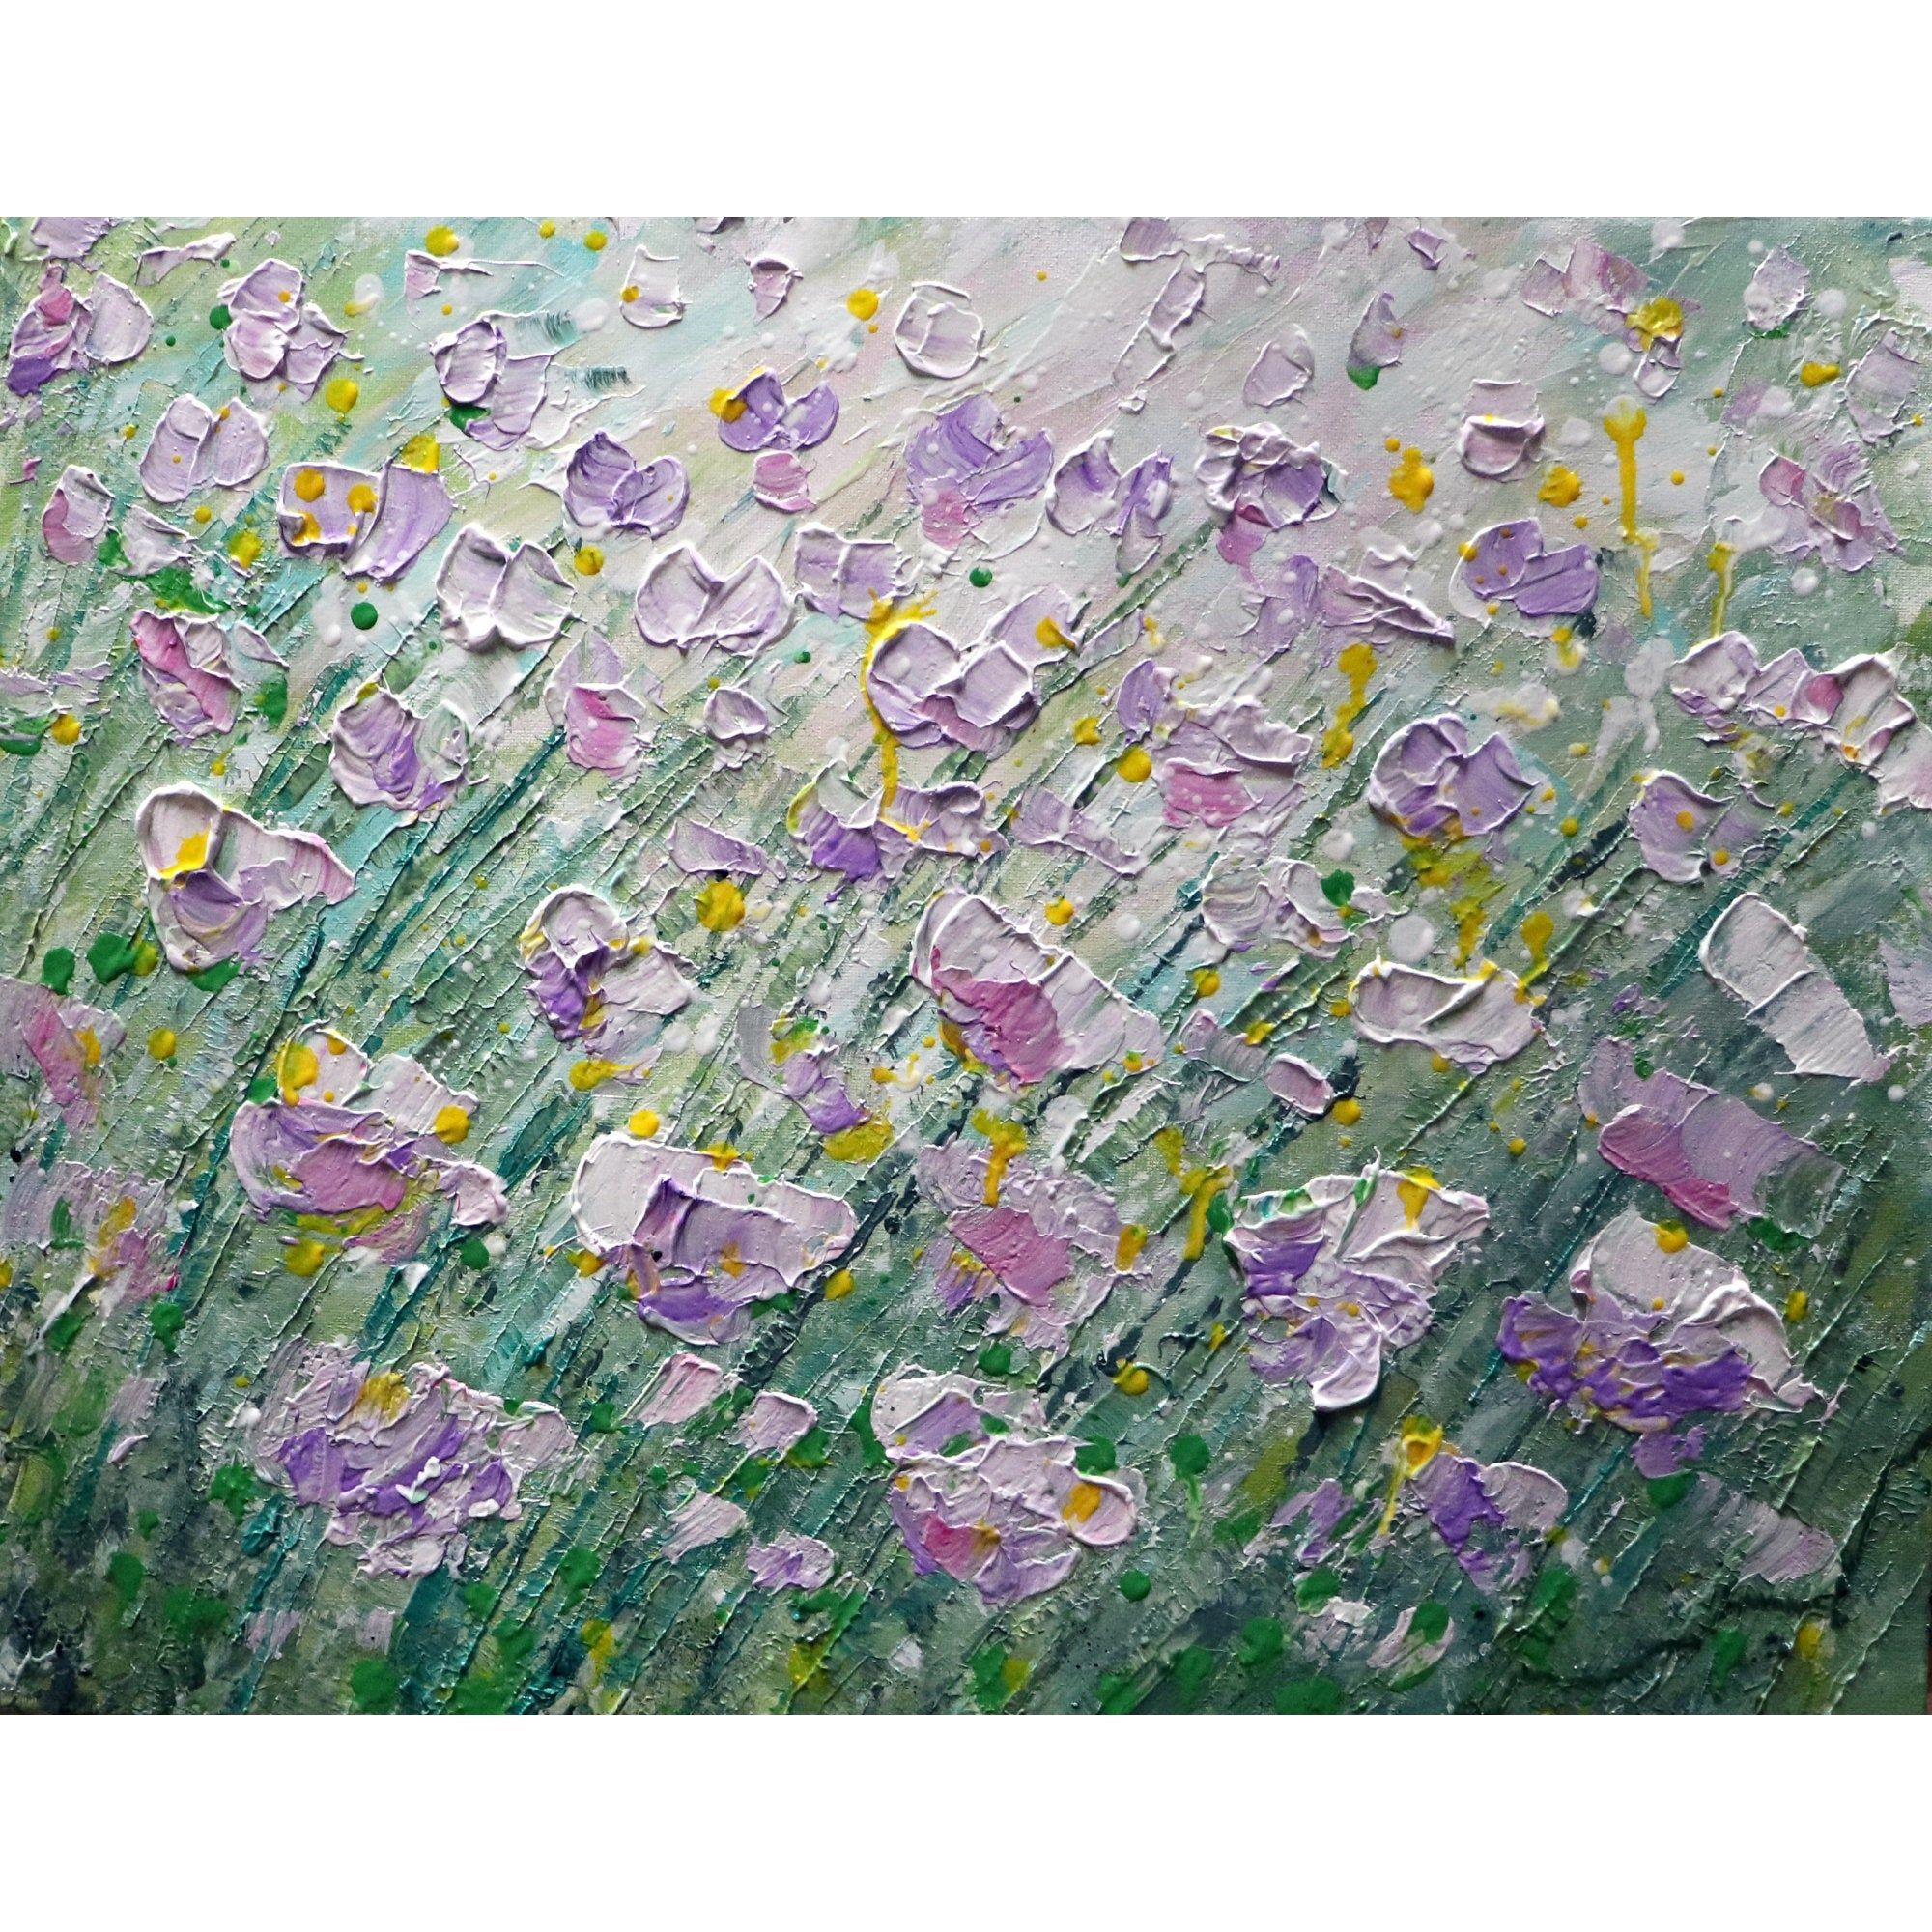 Spring Flowers Original Painting Impasto Textured Flowers Art By Luiza Vizoli Purple Lavender Pink Spring Wildflowers In 2020 Flower Art Original Paintings Painting